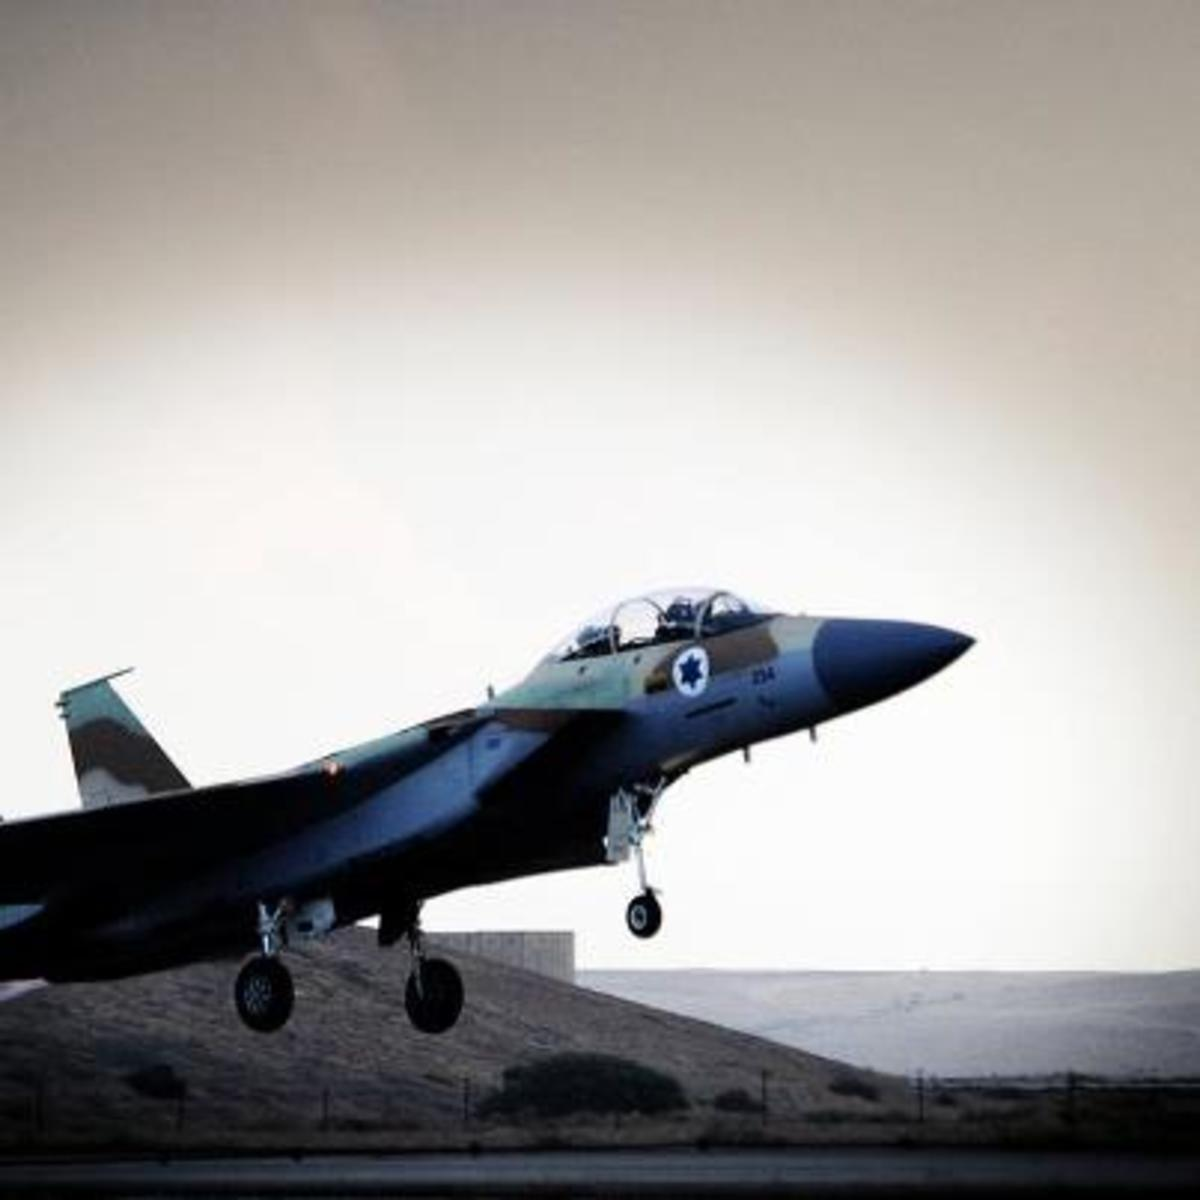 Israel Jet Surveillance Flight Takeoff